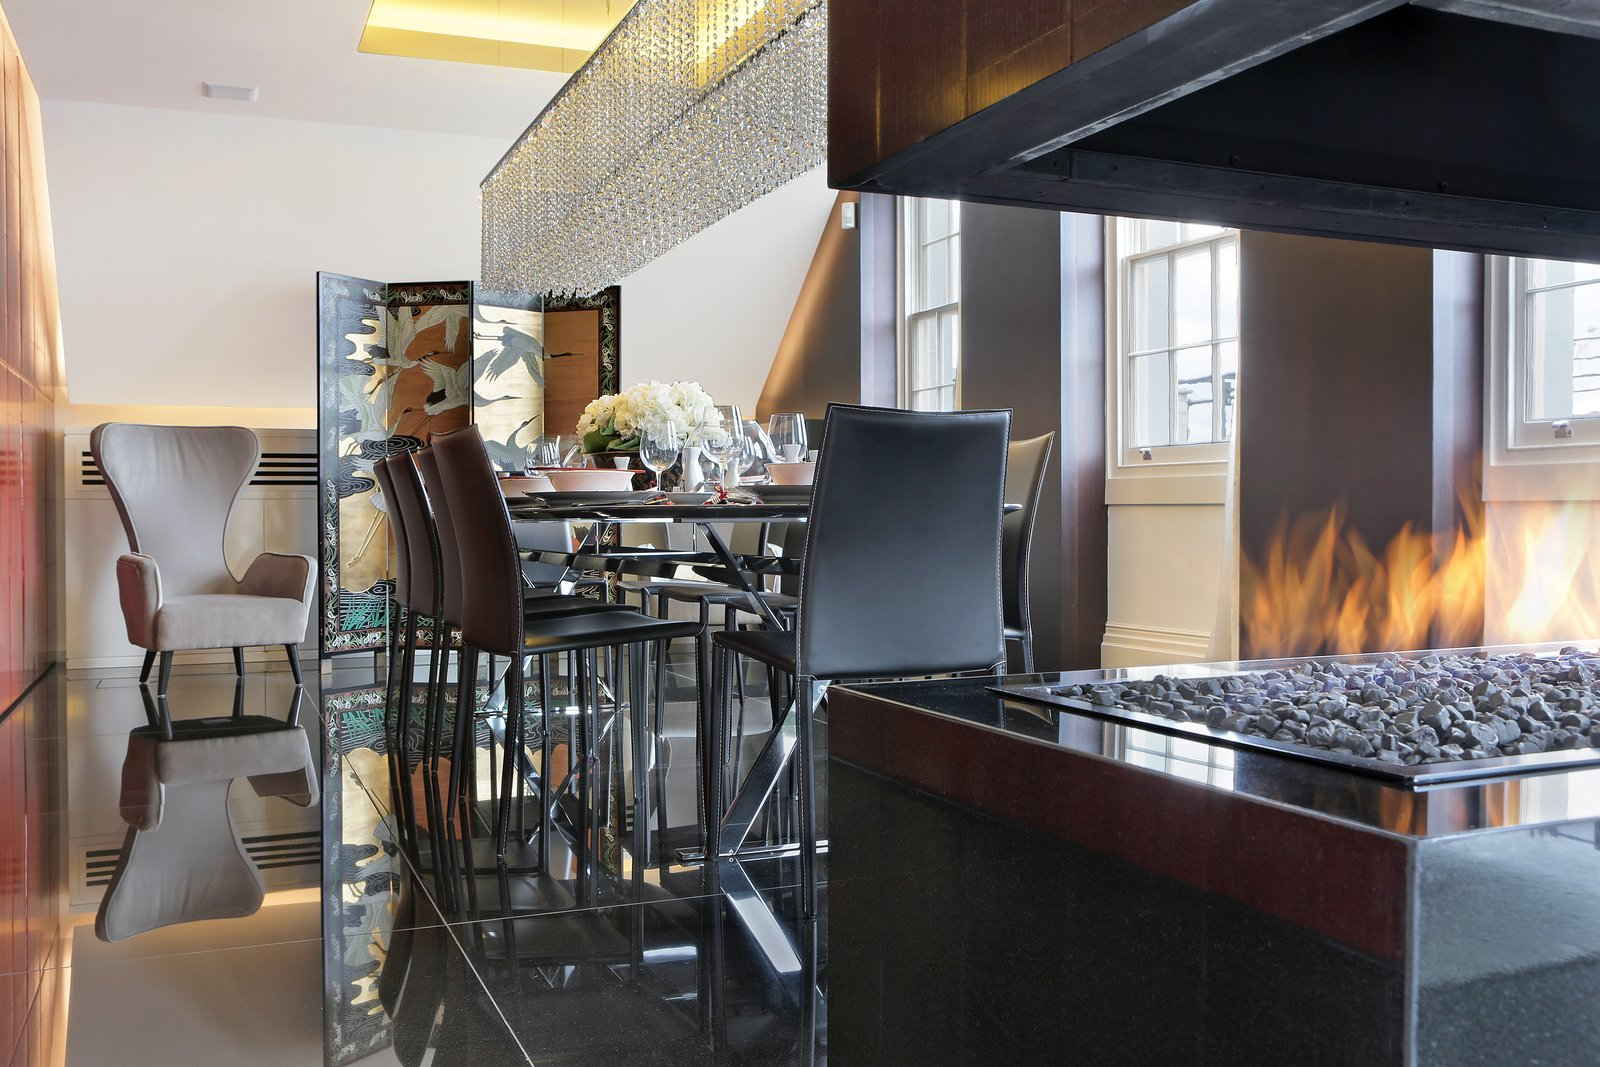 Overlooking London's St. James's Park, the penthouse of the Carlton House Terrace features 24-hour security and a private entrance with a concierge desk. Elevator access leads you to this renovated residence where the open stacked fireplace takes command of the dining room.  97+ Modern Fireplace Ideas by Dwell from Proof That a Modern Fireplace Can Be the Defining Factor of a Space